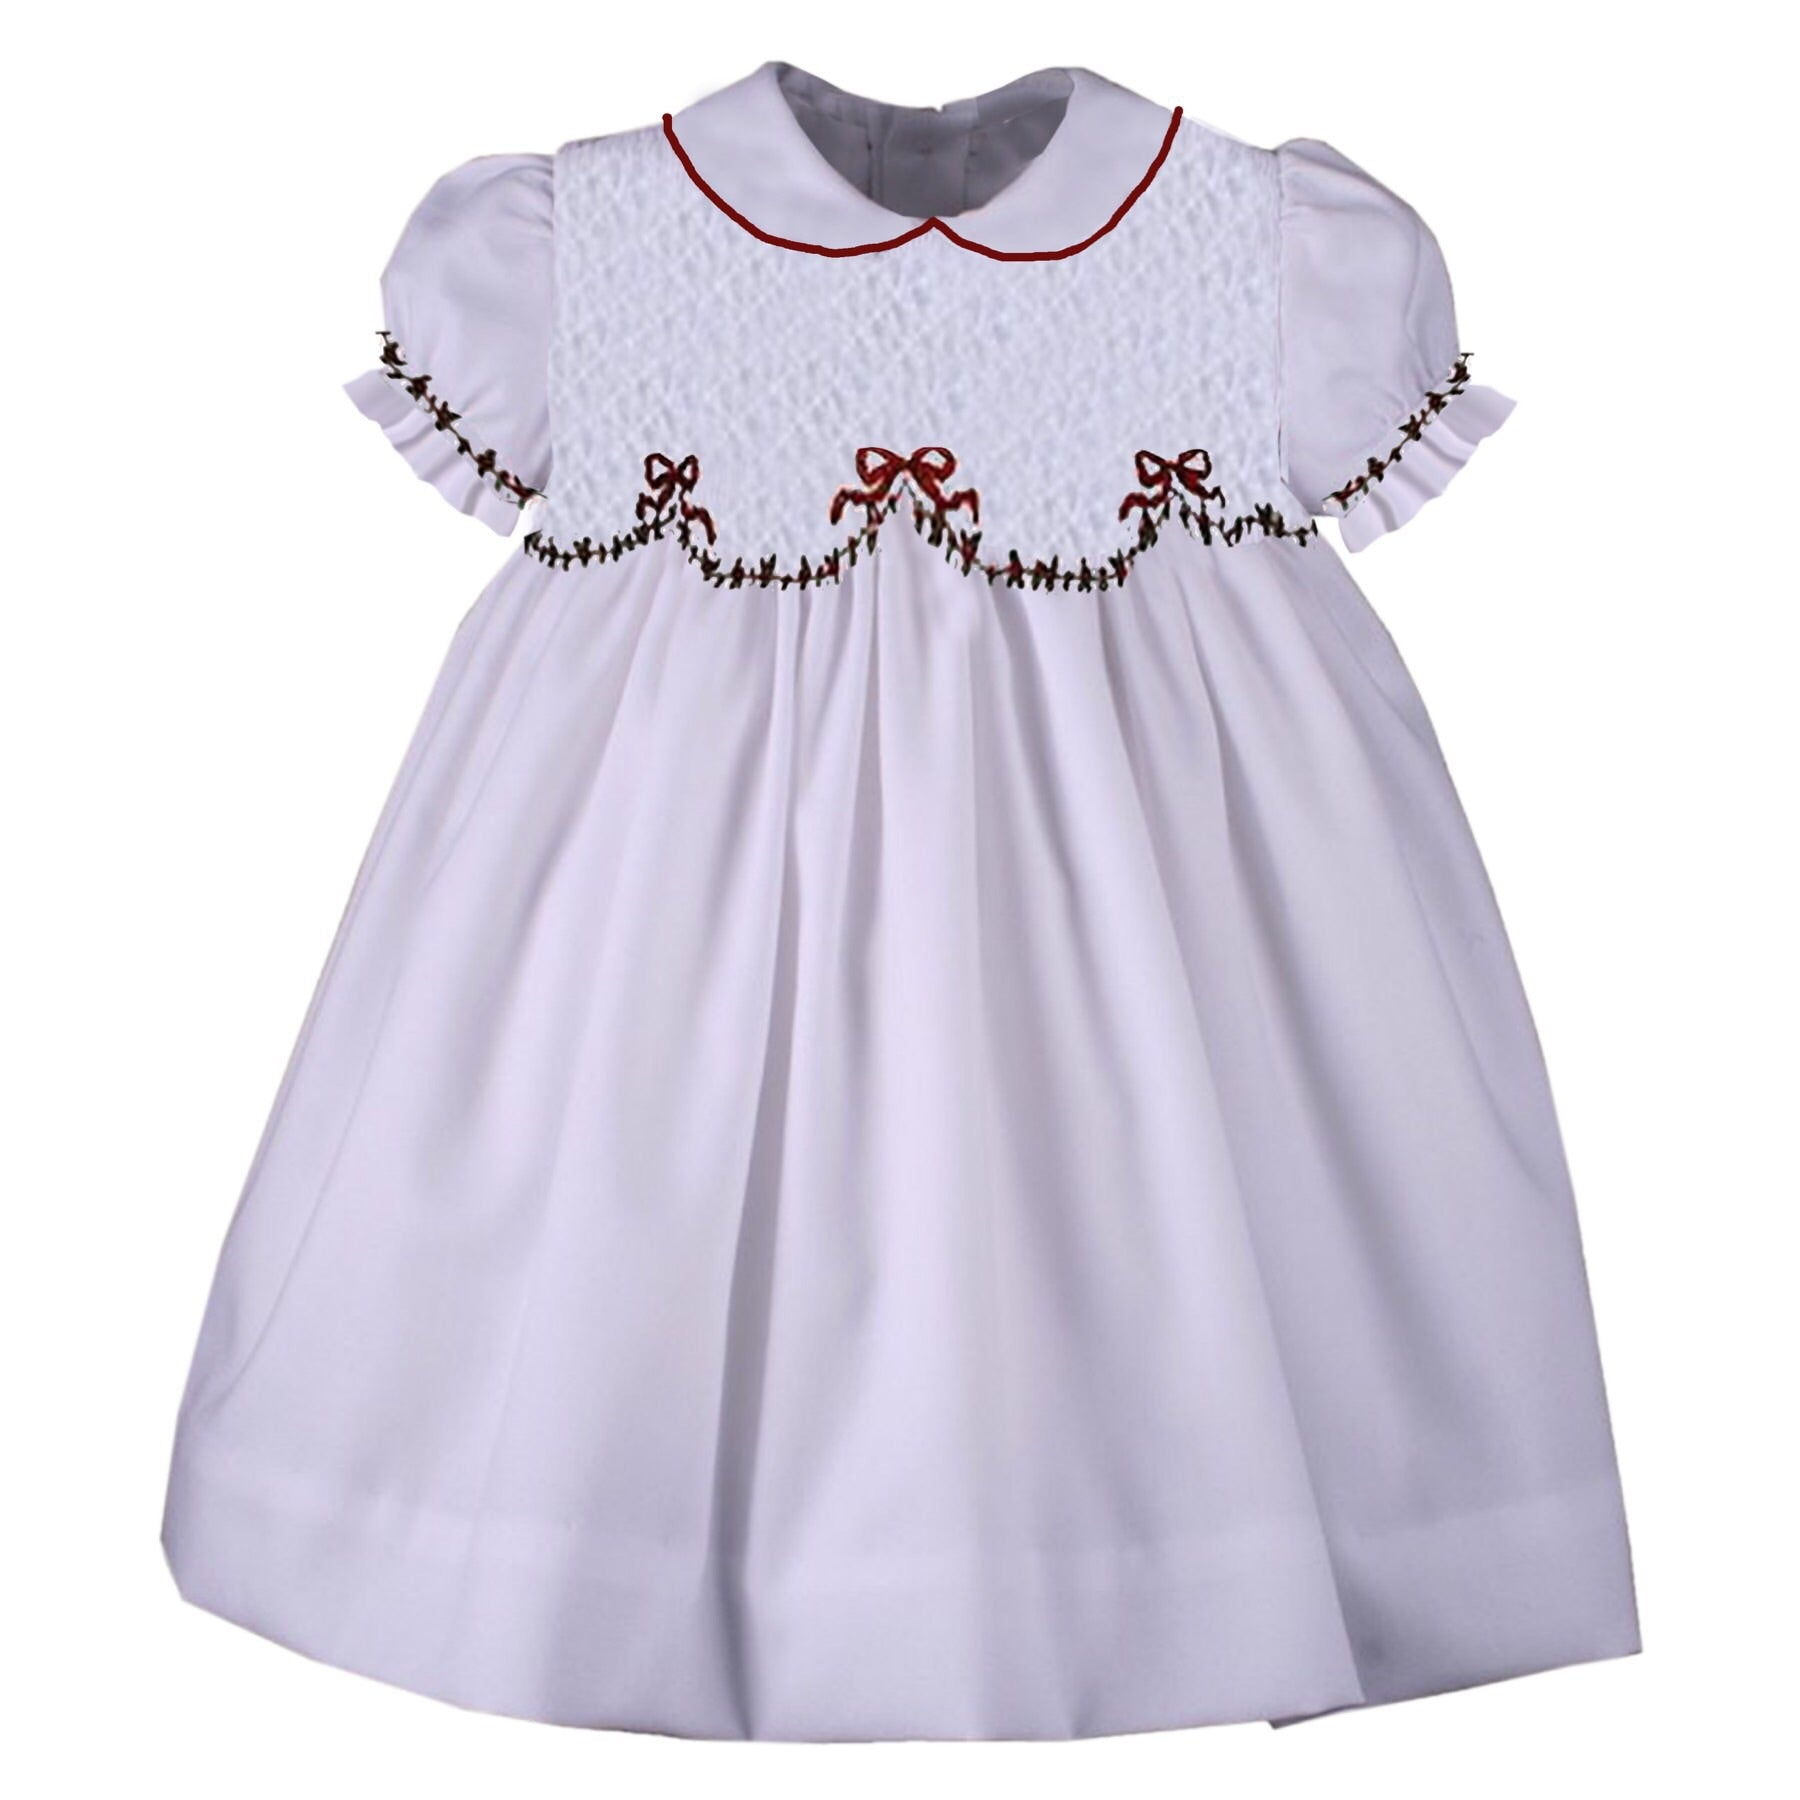 6cace5cb7 White Smocked Holiday Bow Dress - Ready to Ship – Smocked Blessings